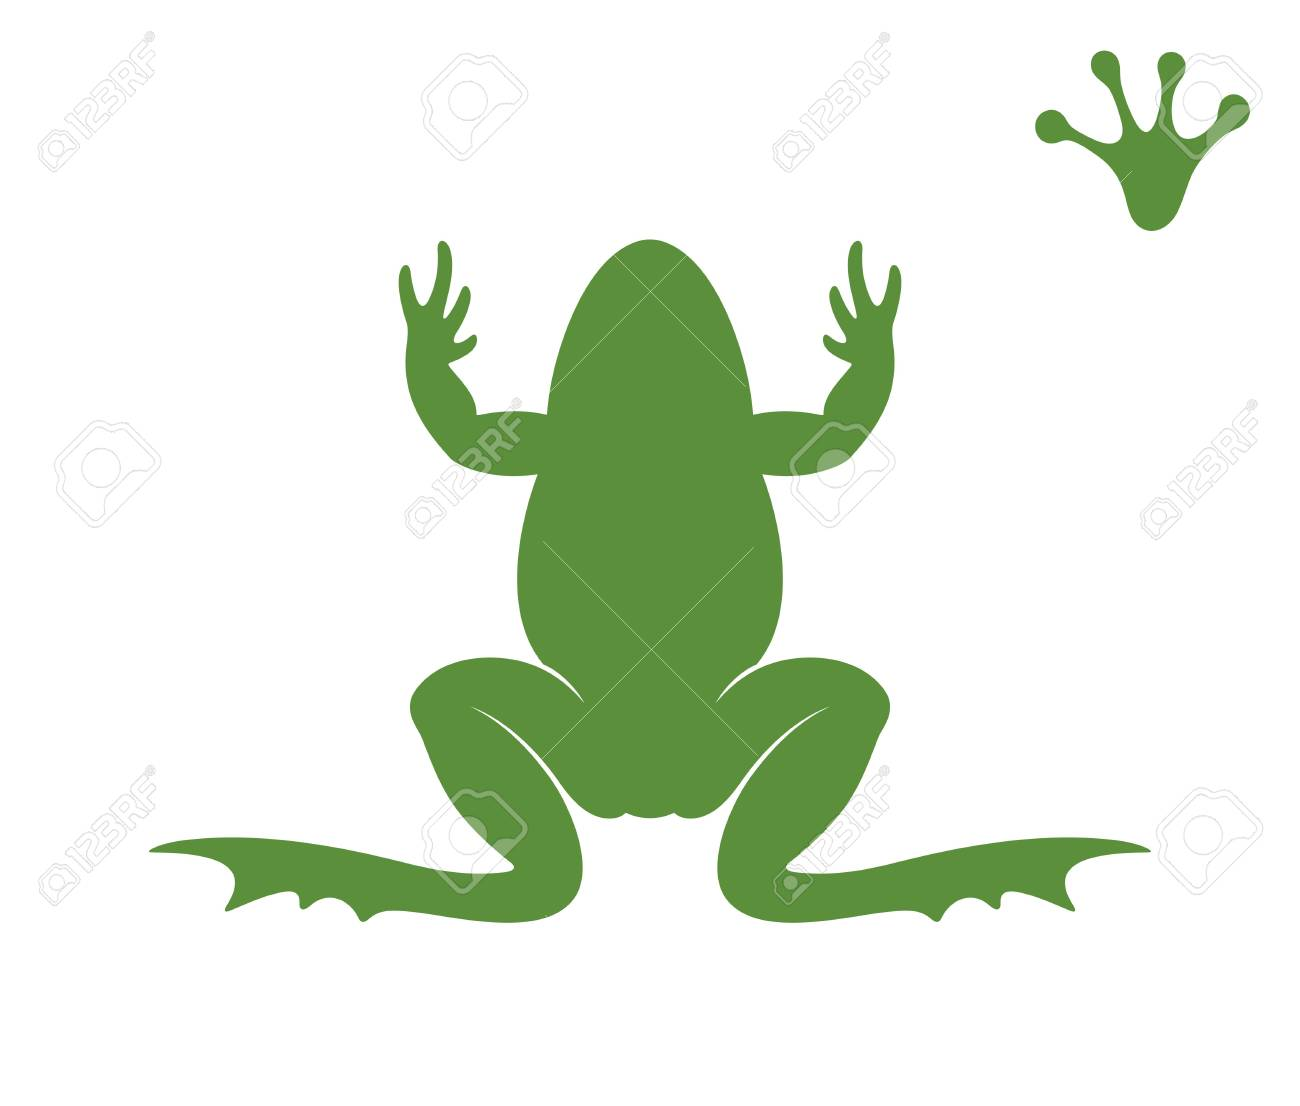 Frog Clipart Shadow - Frog Silhouette - Png Download (#3785921) - PinClipart